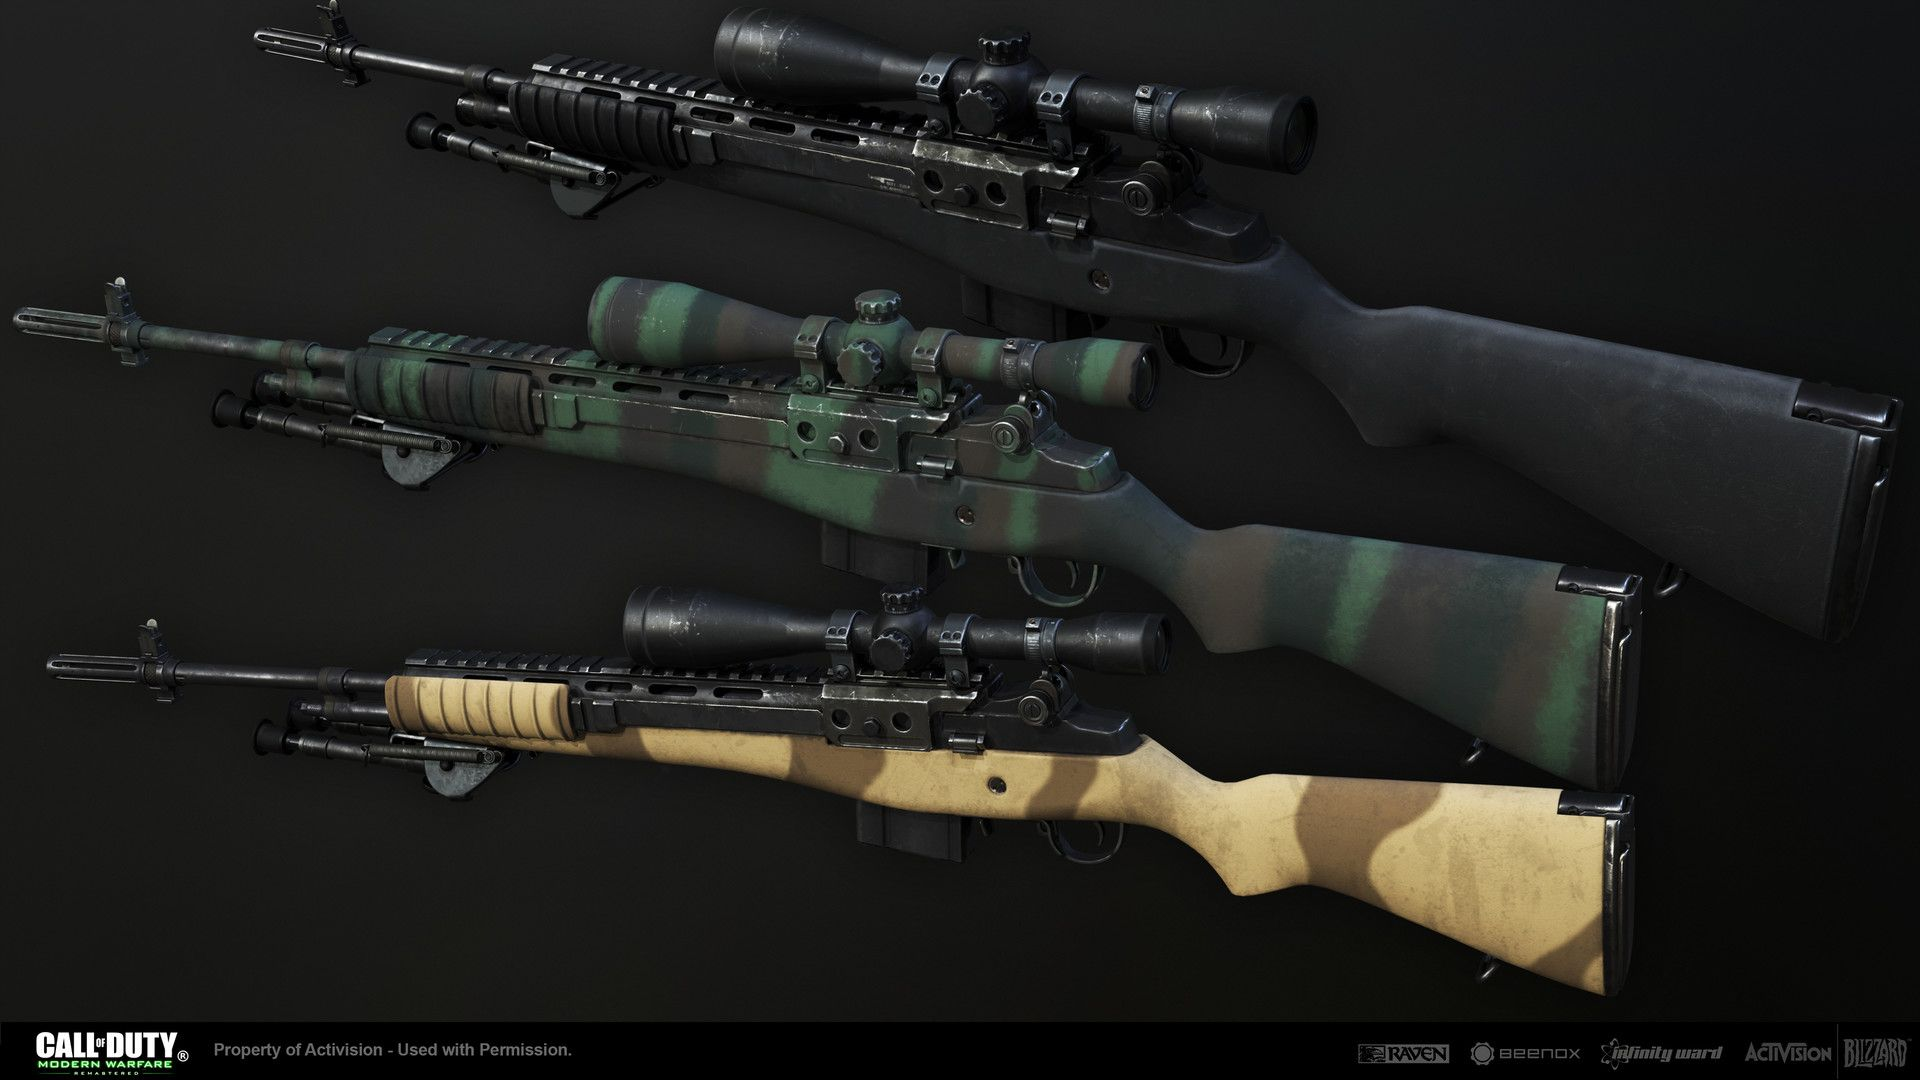 Pin by siddharth Ravindran on Weapon reference   Guns, Weapons